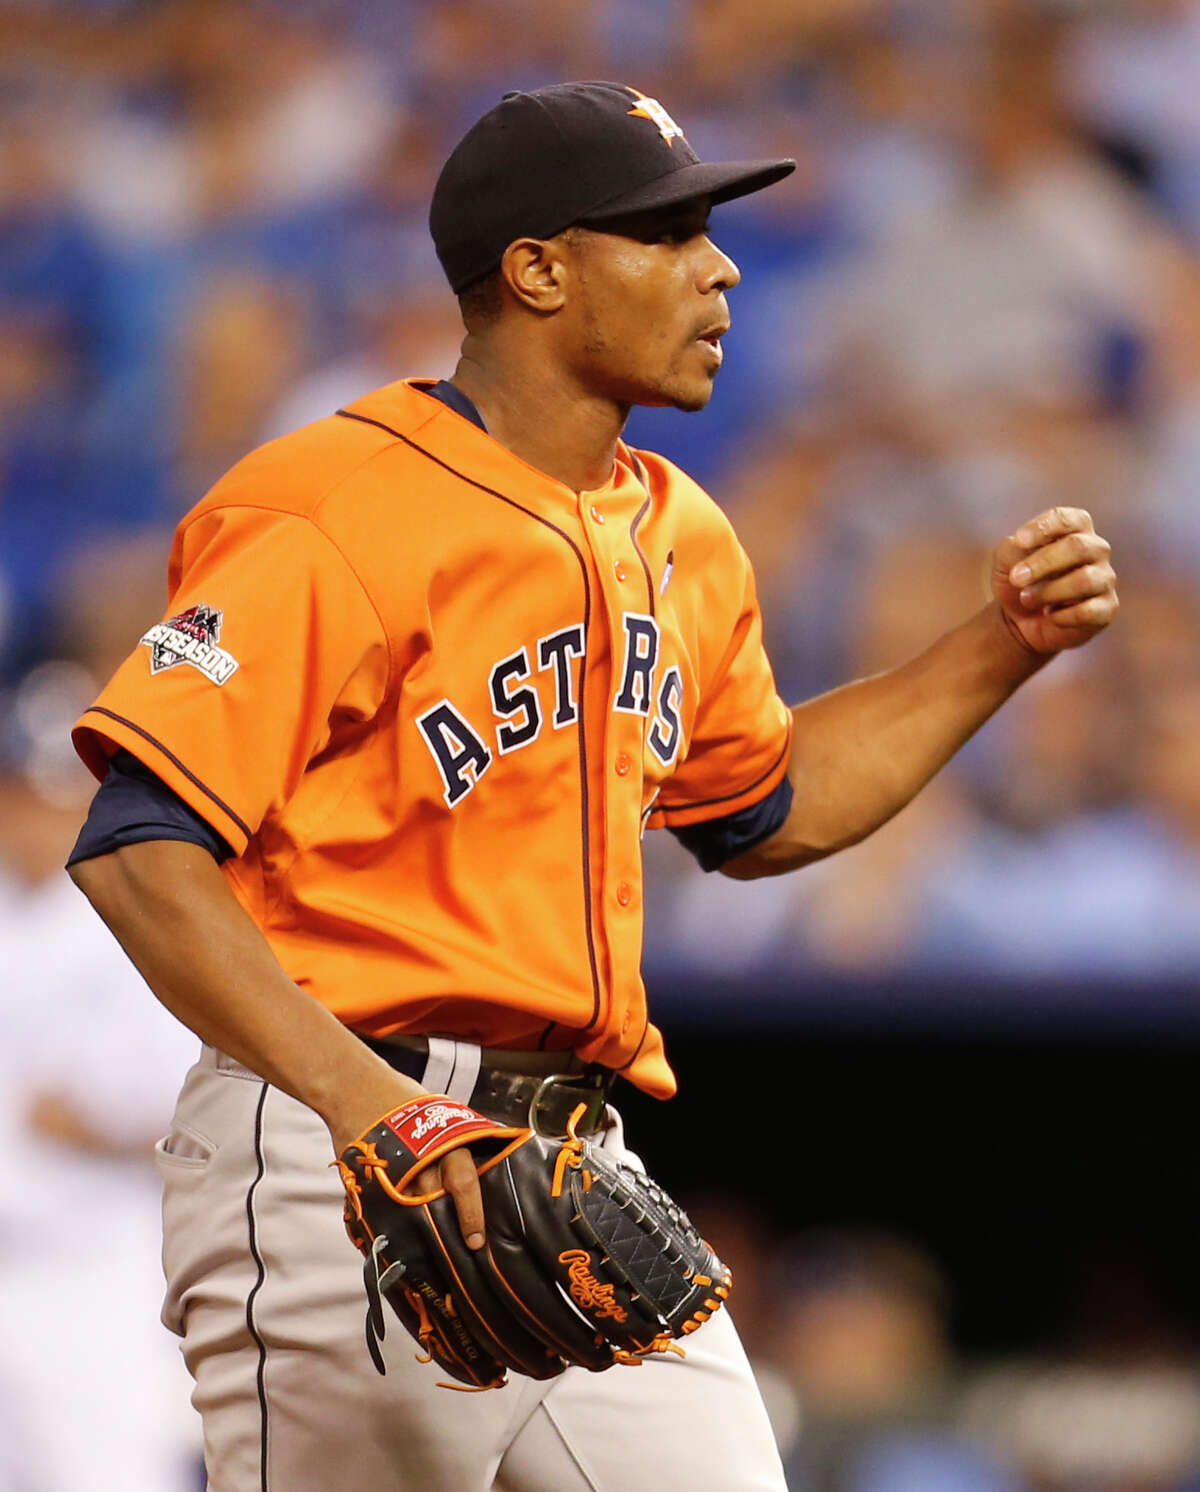 Houston Astros' Tony Sipp on the mound during the seventh inning of Game One of the American League Division Series at Kauffman Stadium on Thursday, Oct. 8, 2015, in Kansas City. ( Karen Warren / Houston Chronicle )